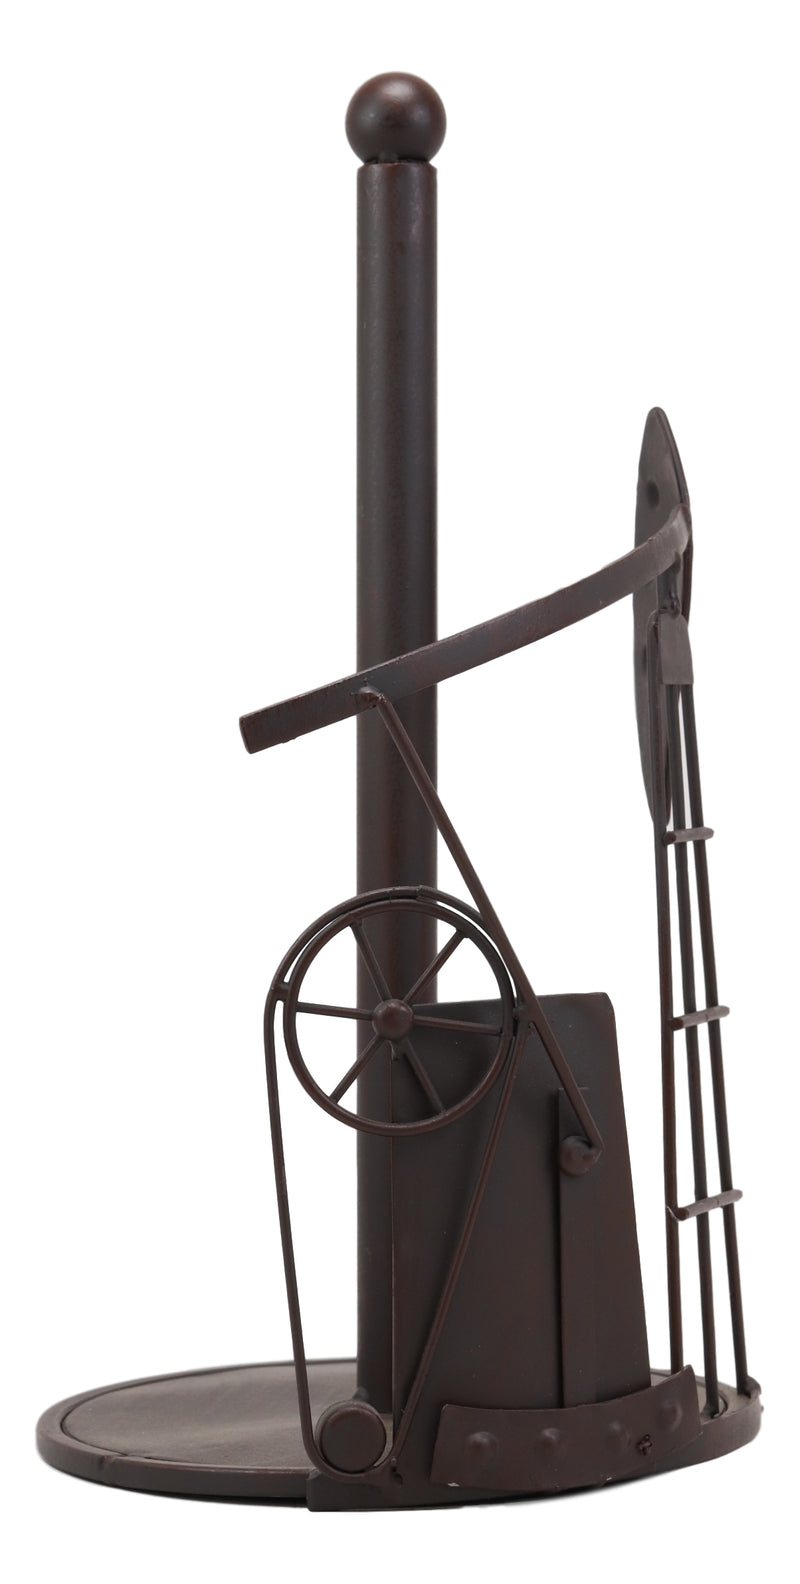 "Ebros 12.75"" Tall Rustic Vintage Oil And Gas Derrick Rig Platform Paper Towel Holder Display Dispenser Stand Made Of Handcrafted Metal Kitchen Bathroom Home Decor In Aged Bronze Finish Nodding Donkey - Ebros Gift"